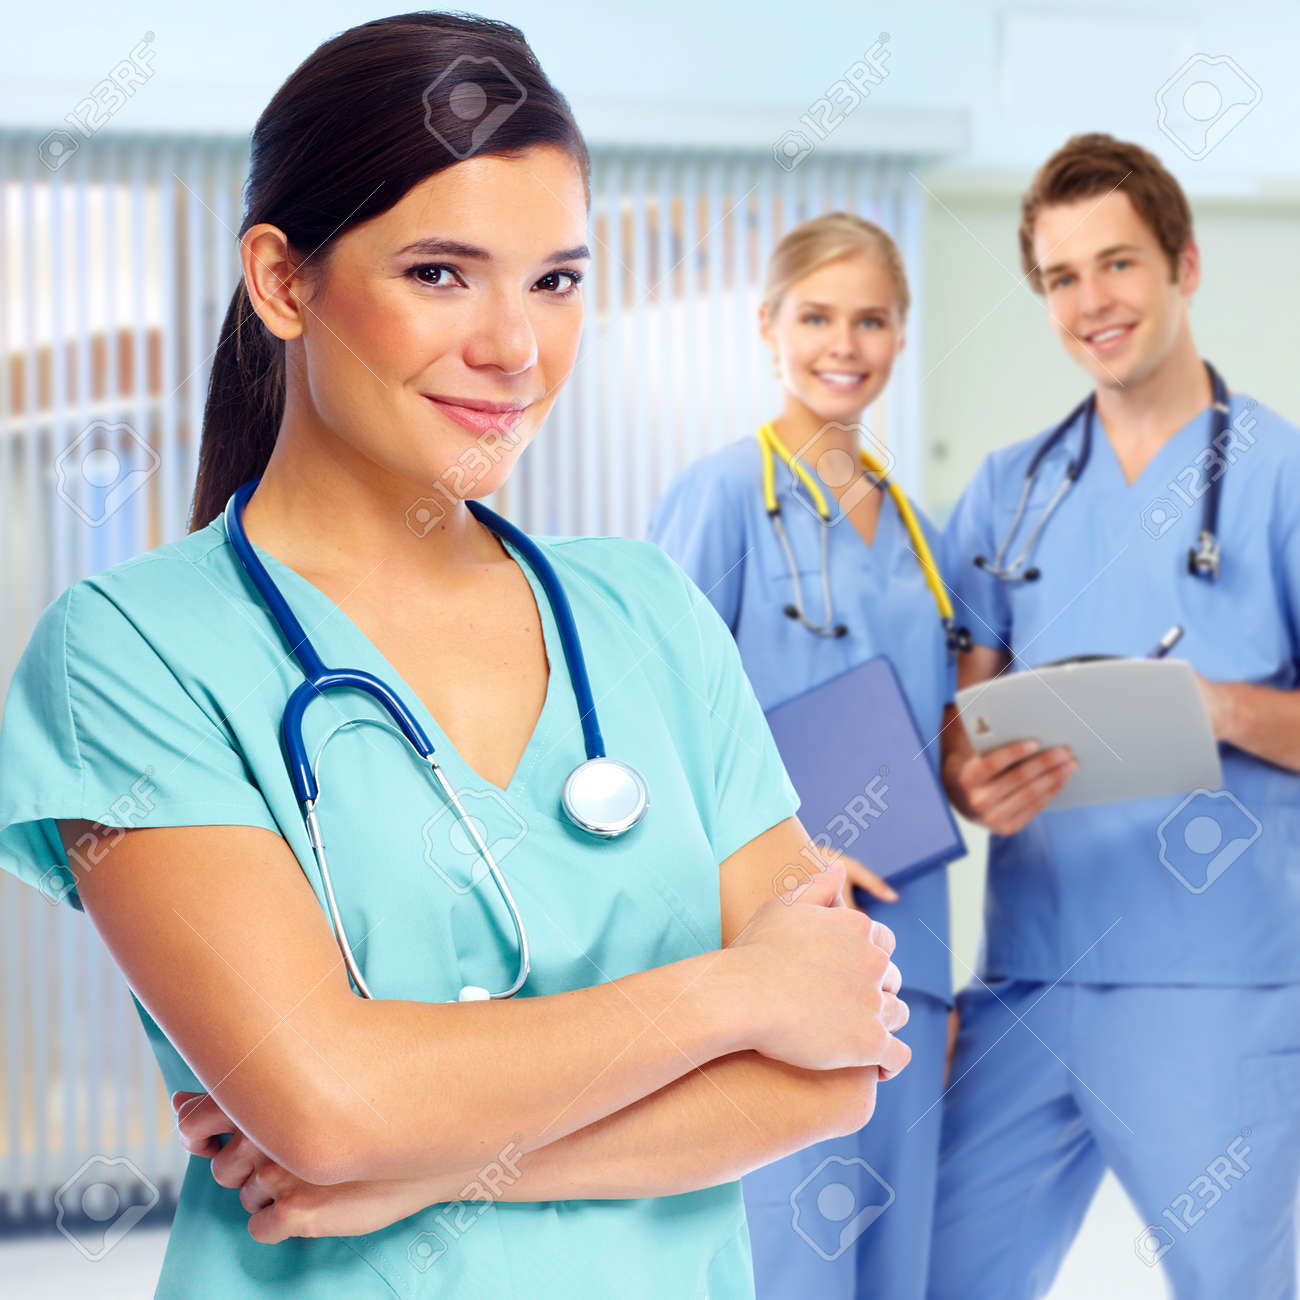 Group of doctors and nurses in medical clinic. Standard-Bild - 58074365